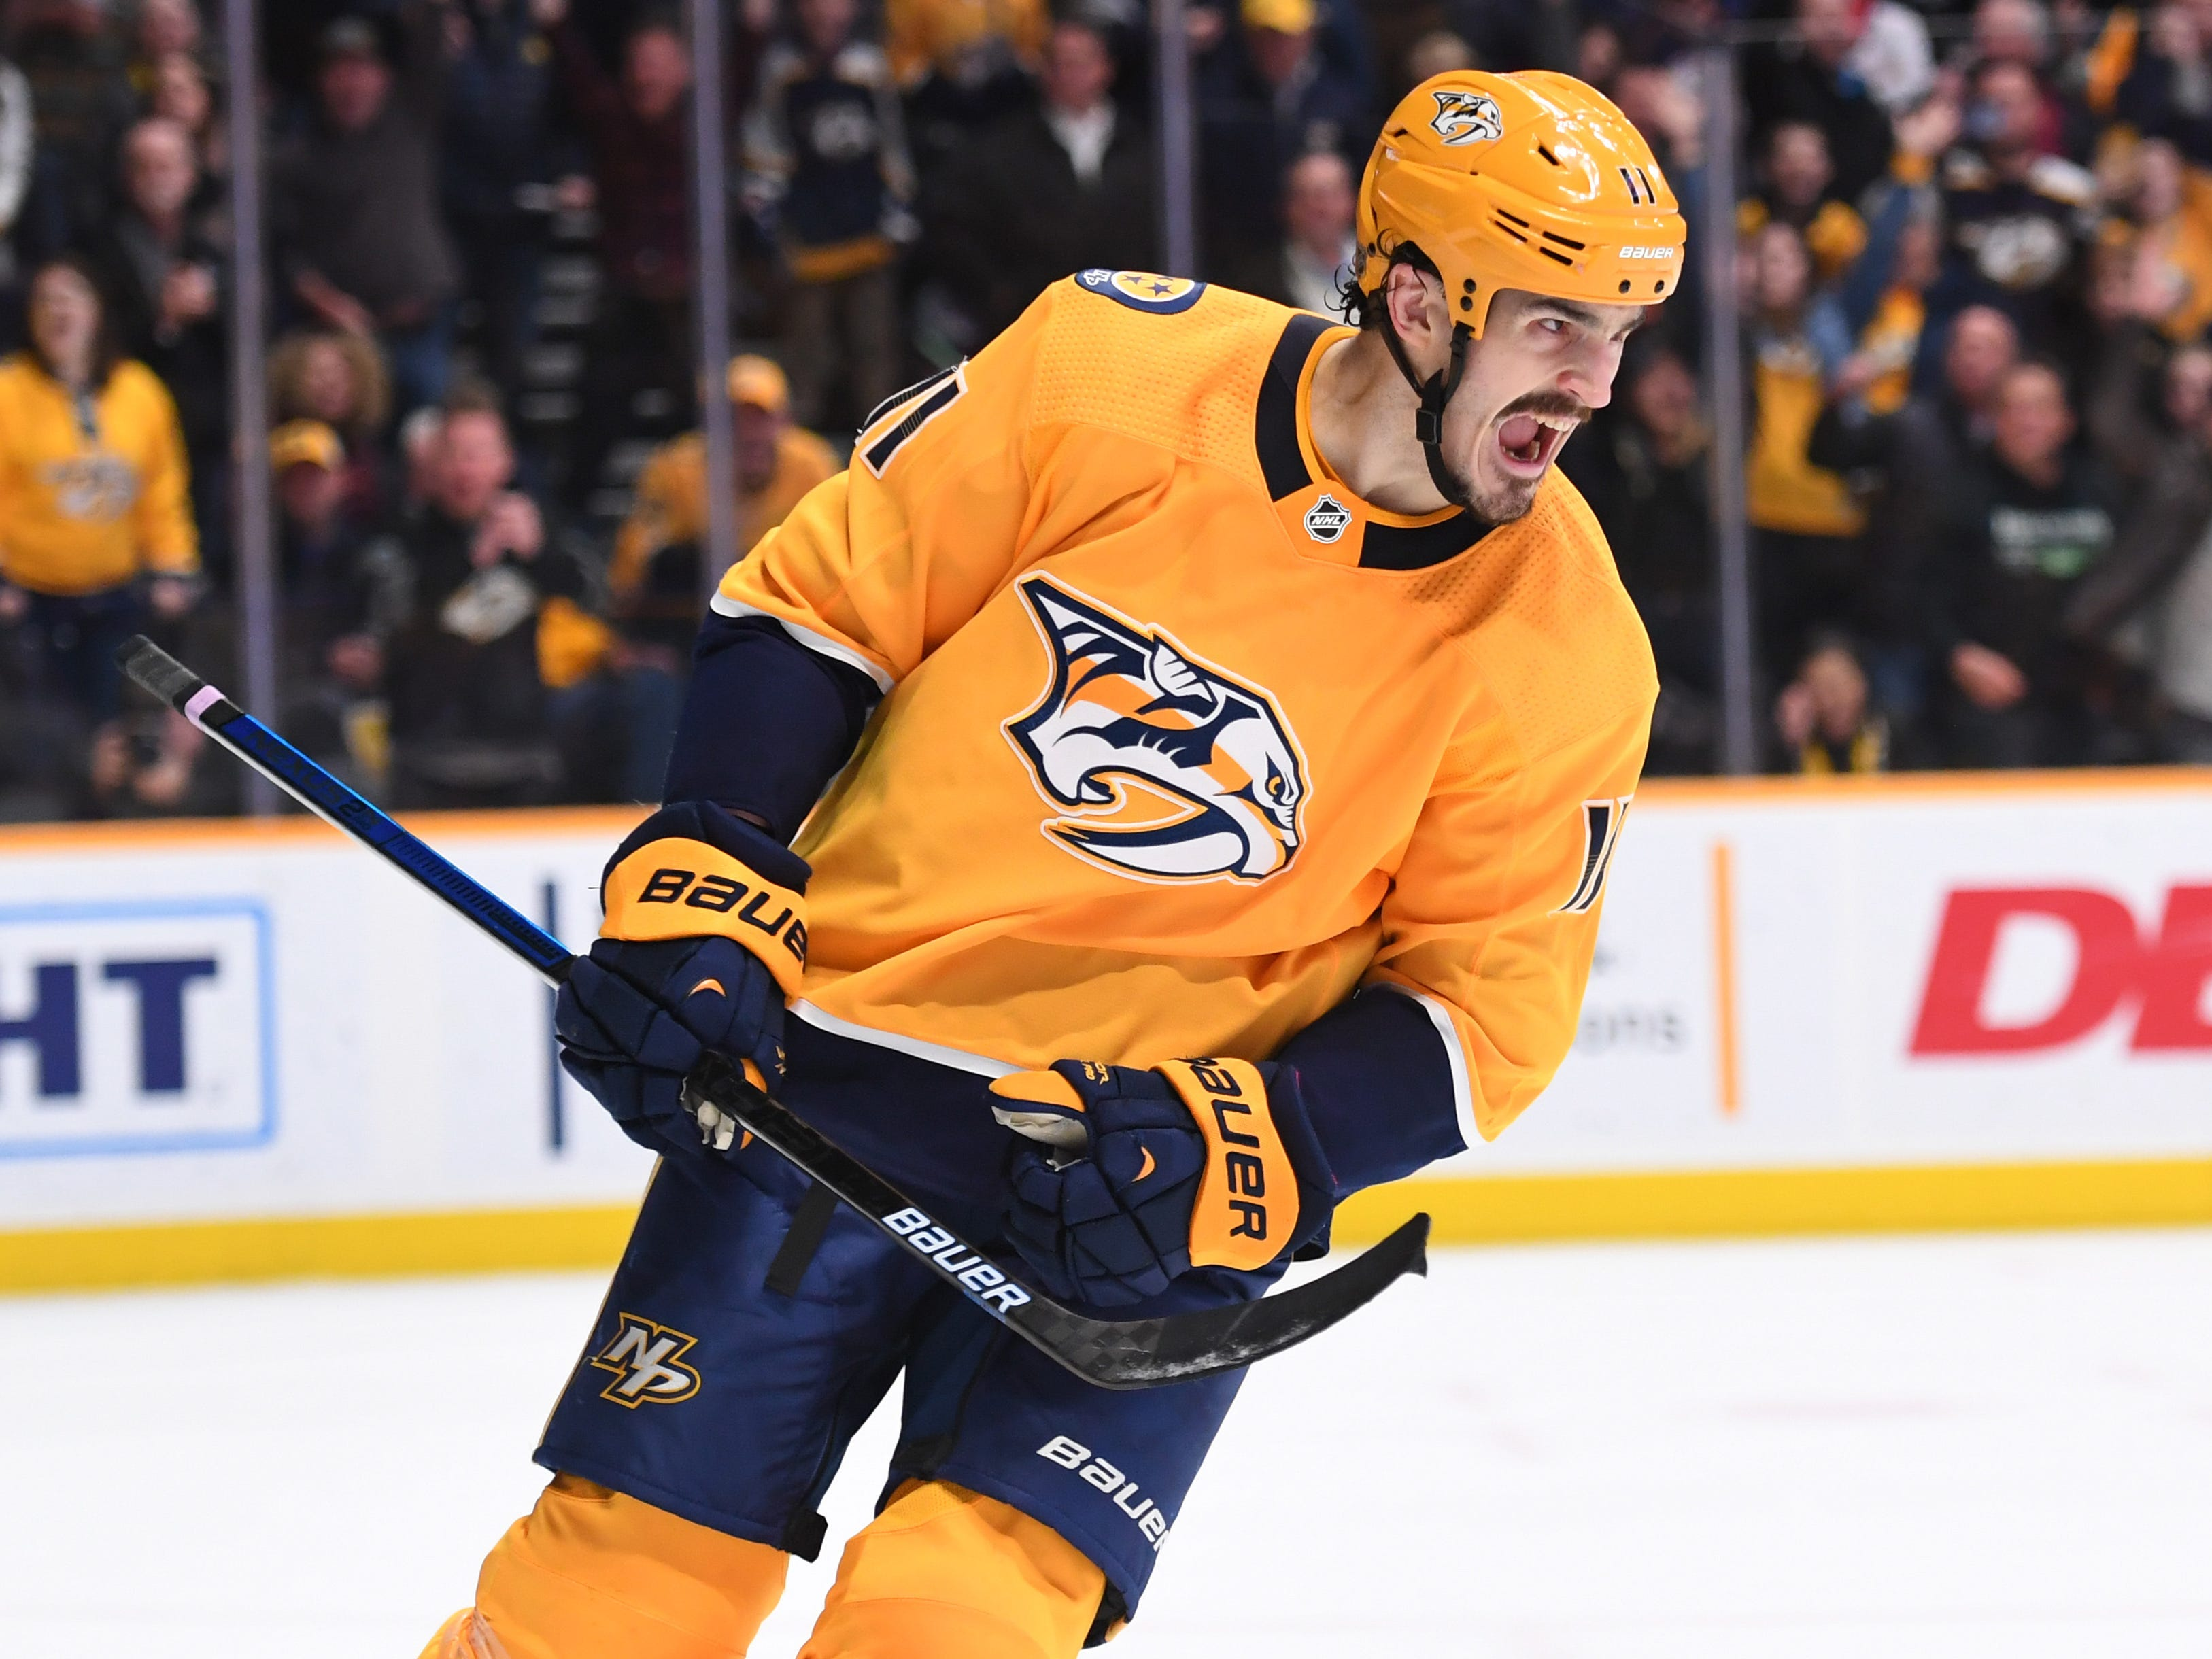 Feb. 25, 2019: Predators 3, Oilers 3 (OT) -- Nashville Predators center Brian Boyle (11) celebrates after scoring the game winning goal in the shootout against the Edmonton Oilers at Bridgestone Arena.